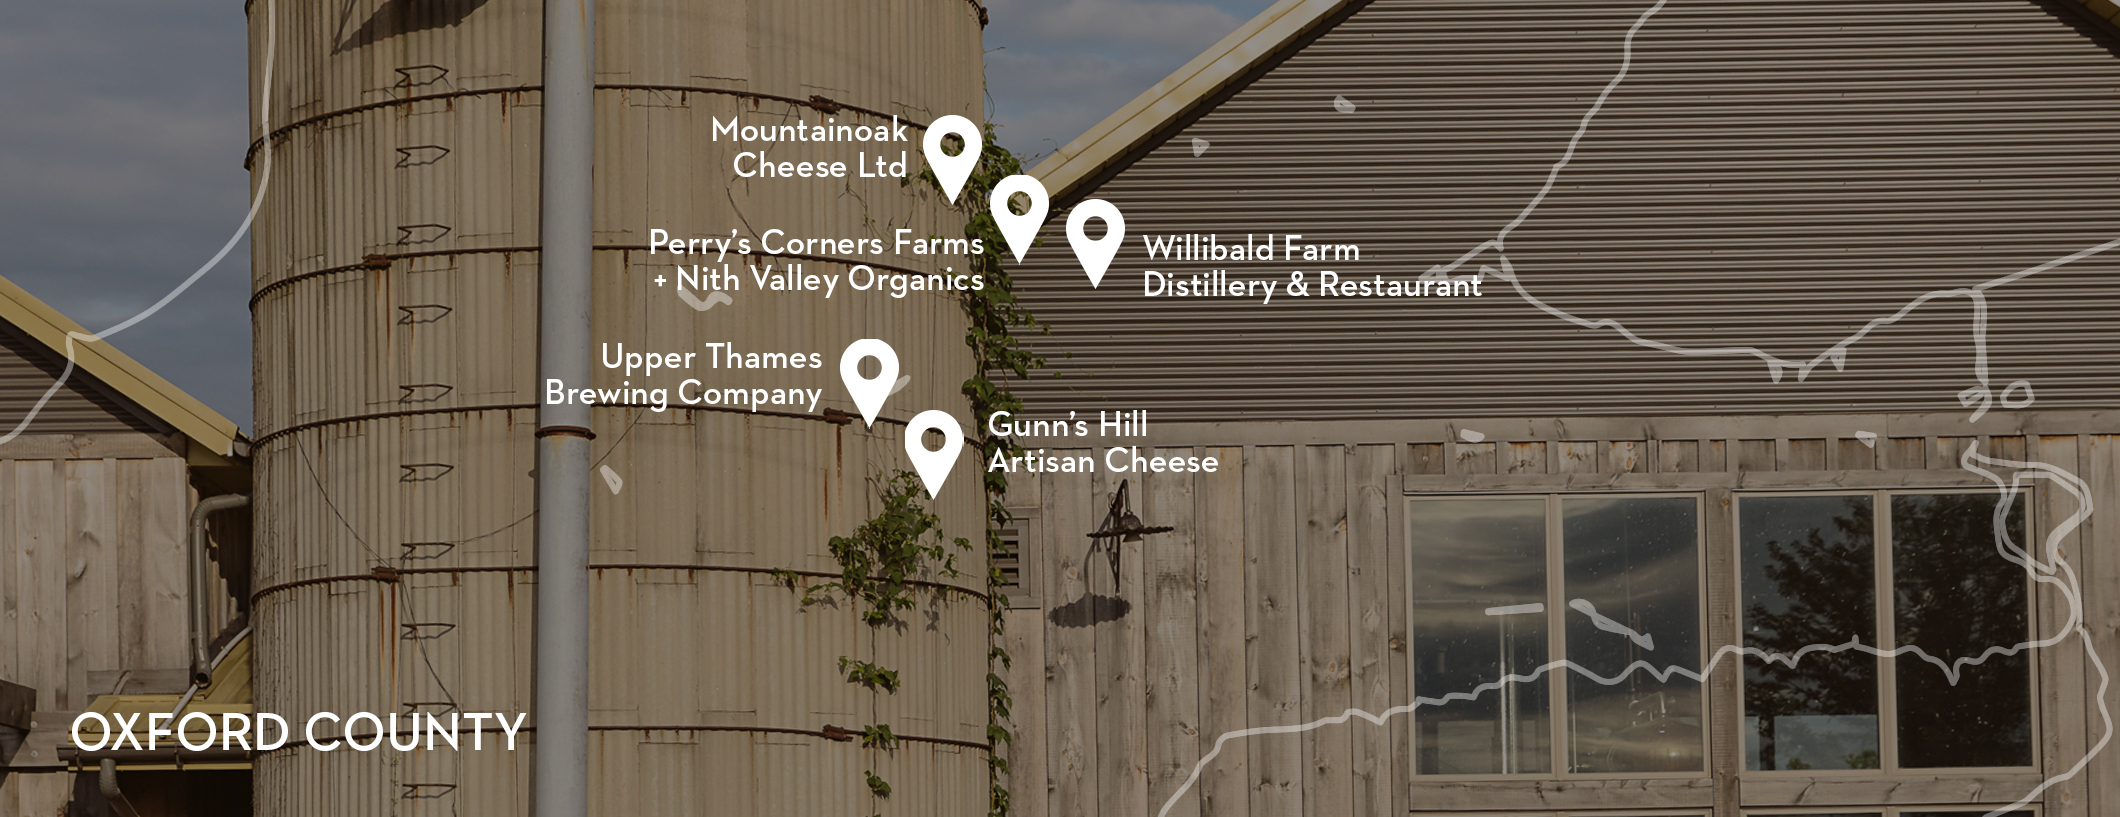 Oxford County - Discover the 5 Stops